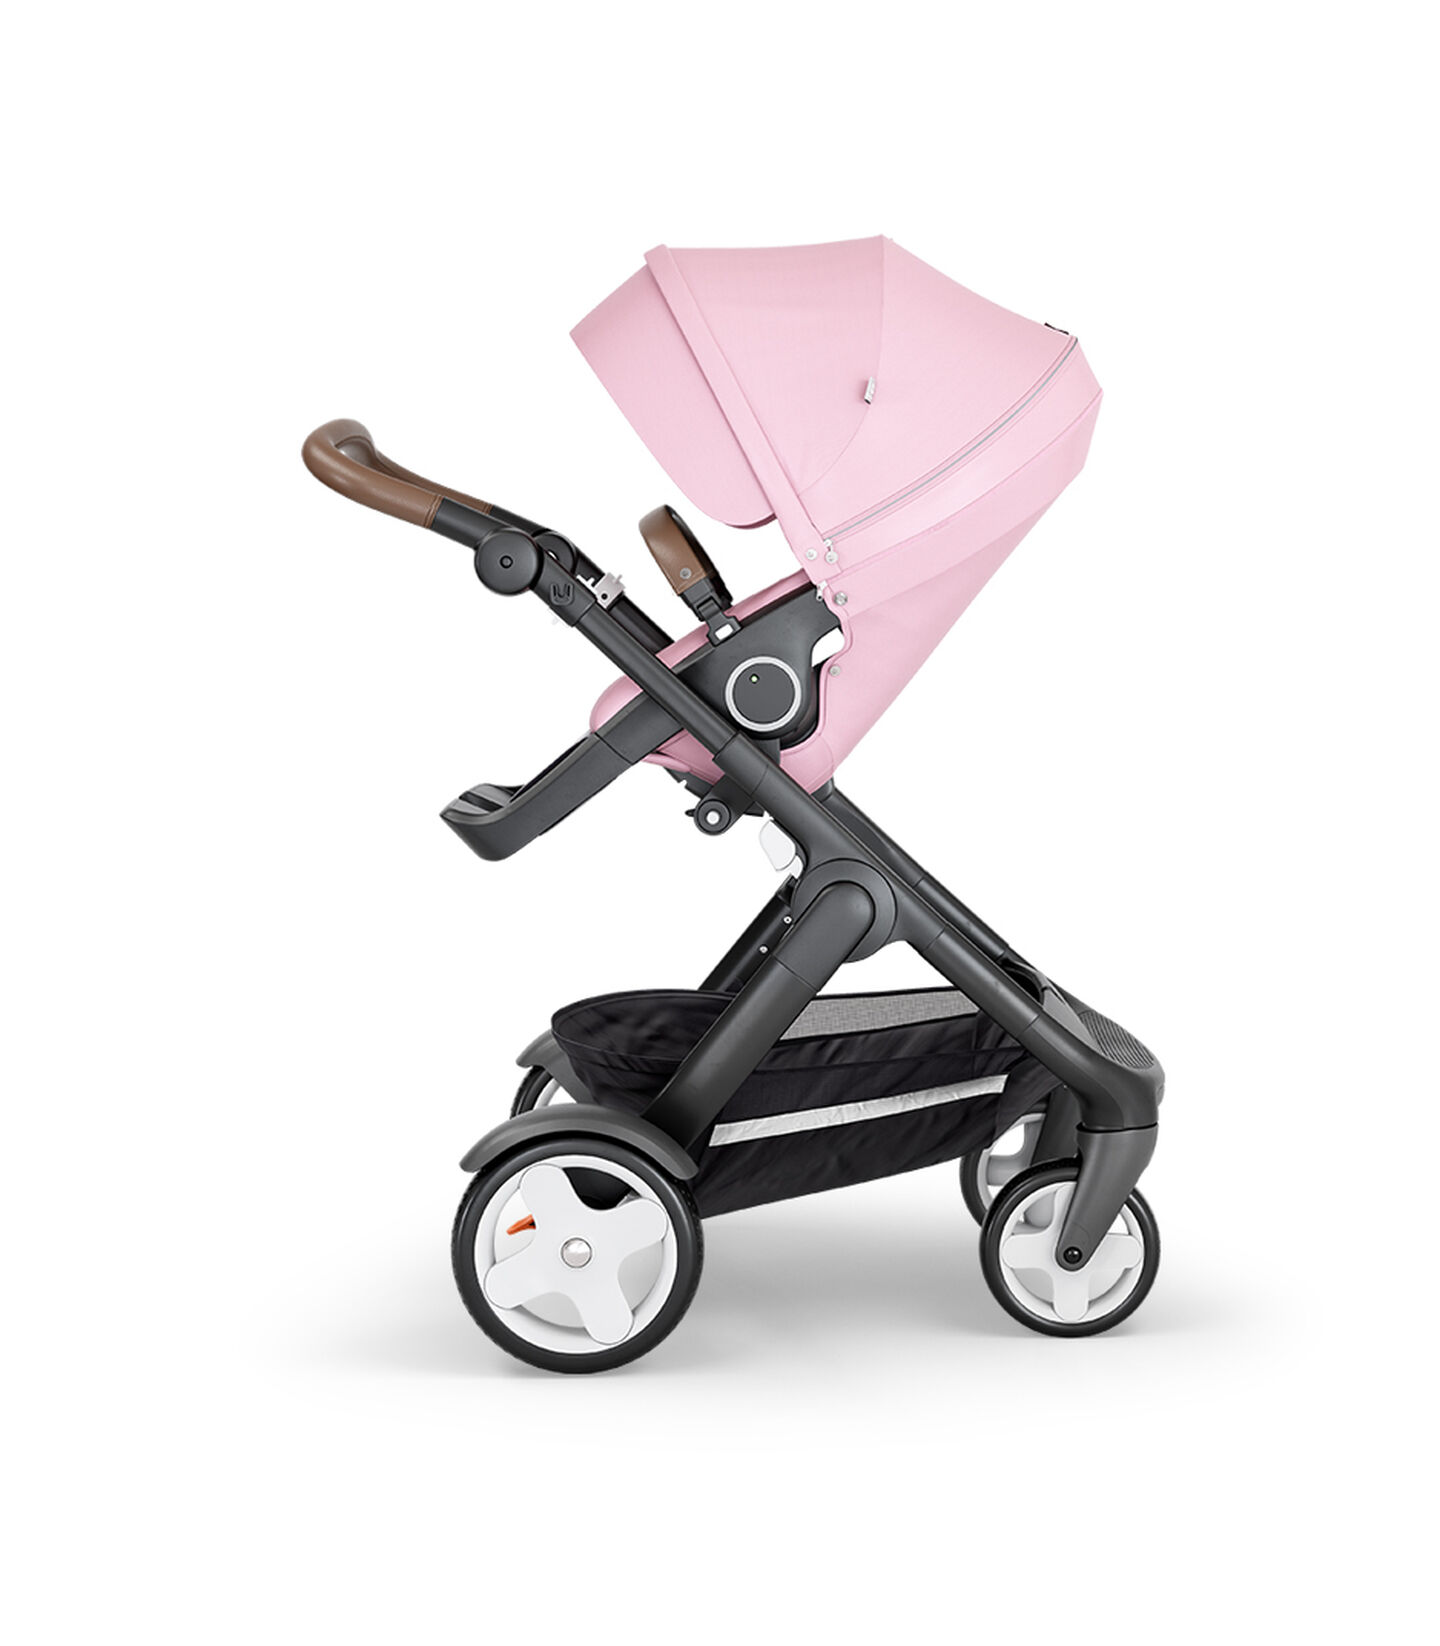 Stokke® Trailz™ with Black Chassis, Black Leatherette and Classic Wheels. Stokke® Stroller Seat, Lotus Pink.